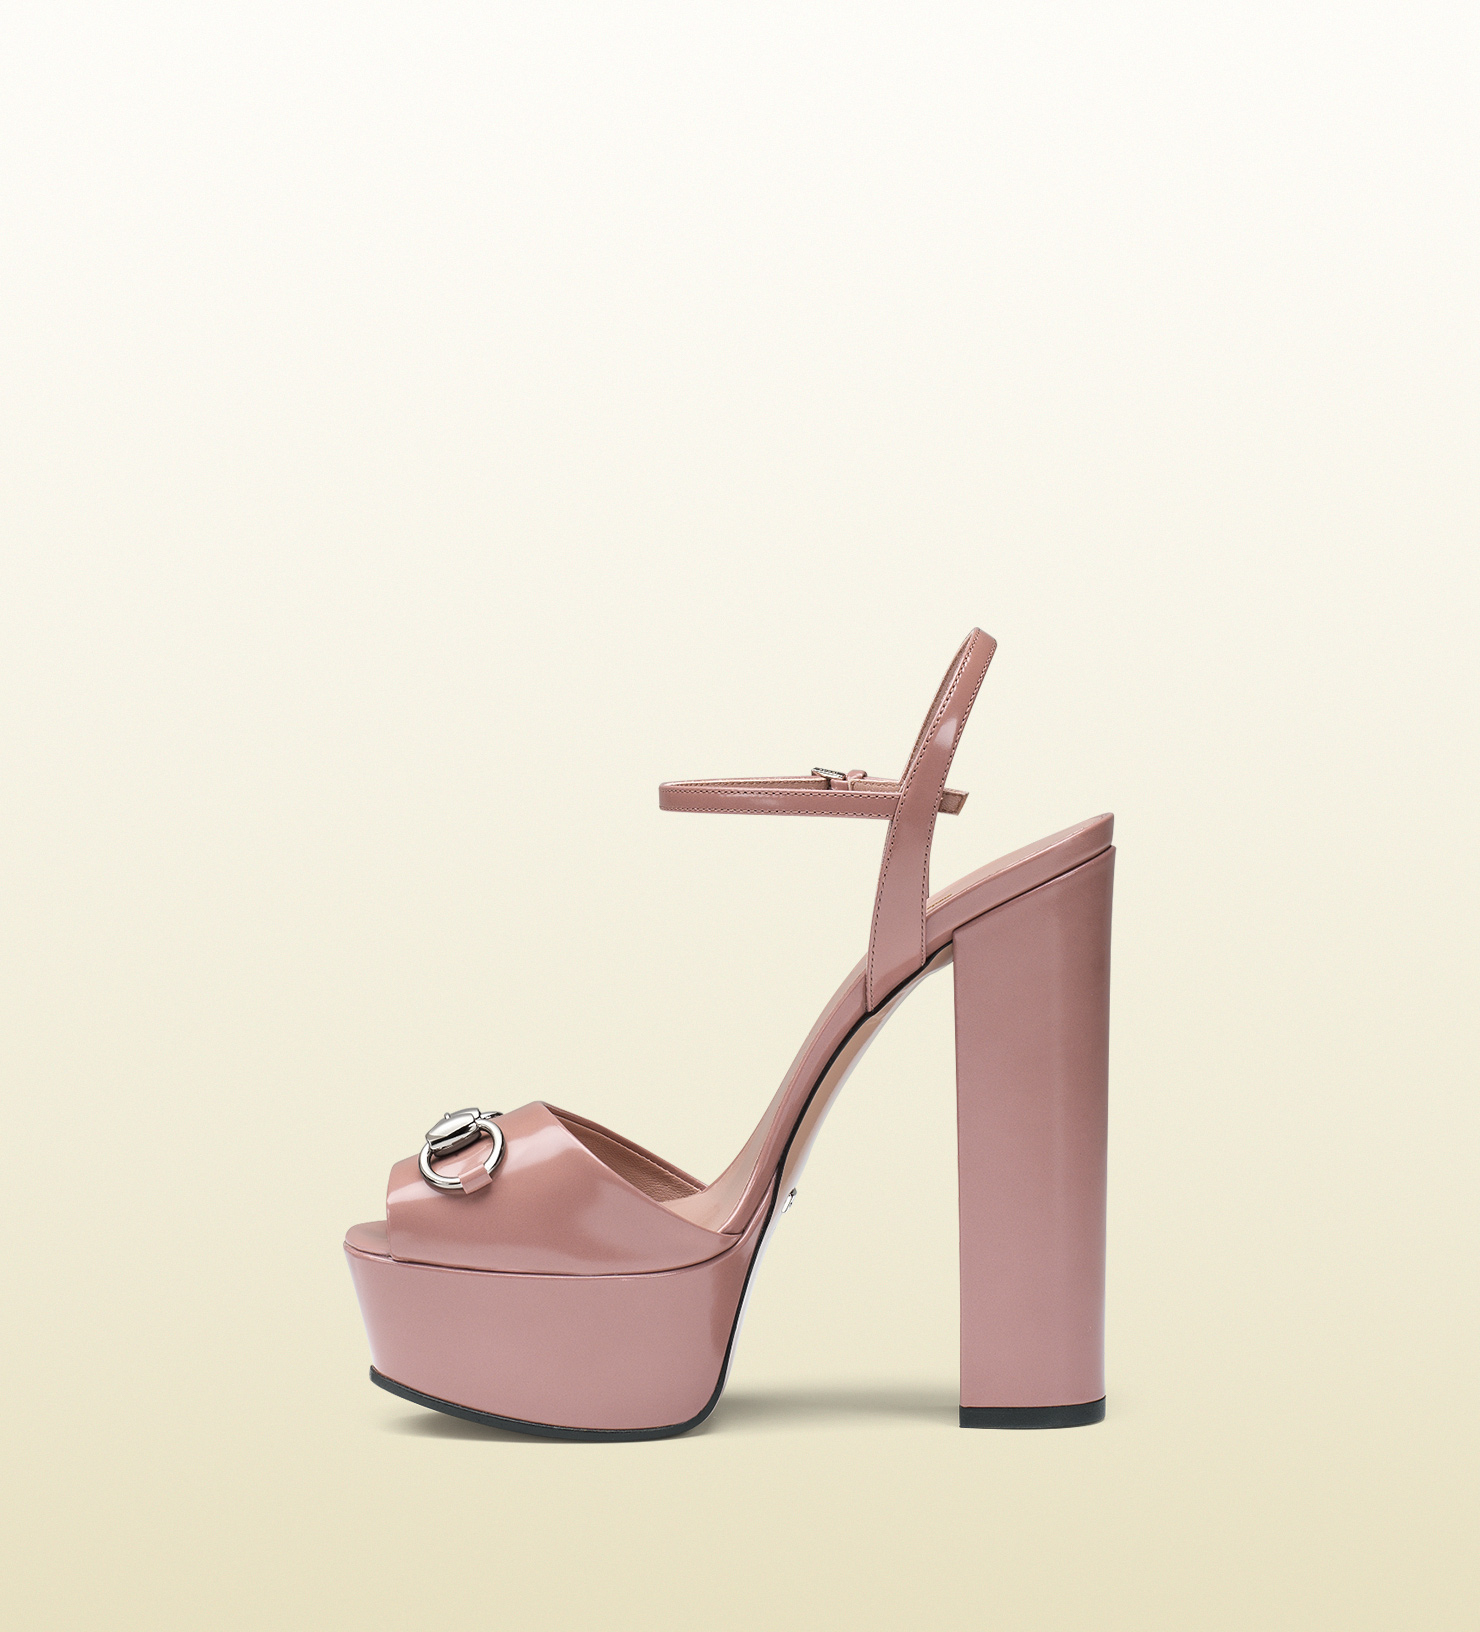 e8fbe94f3fa9 Lyst - Gucci Leather Platform Horsebit Sandal in Pink